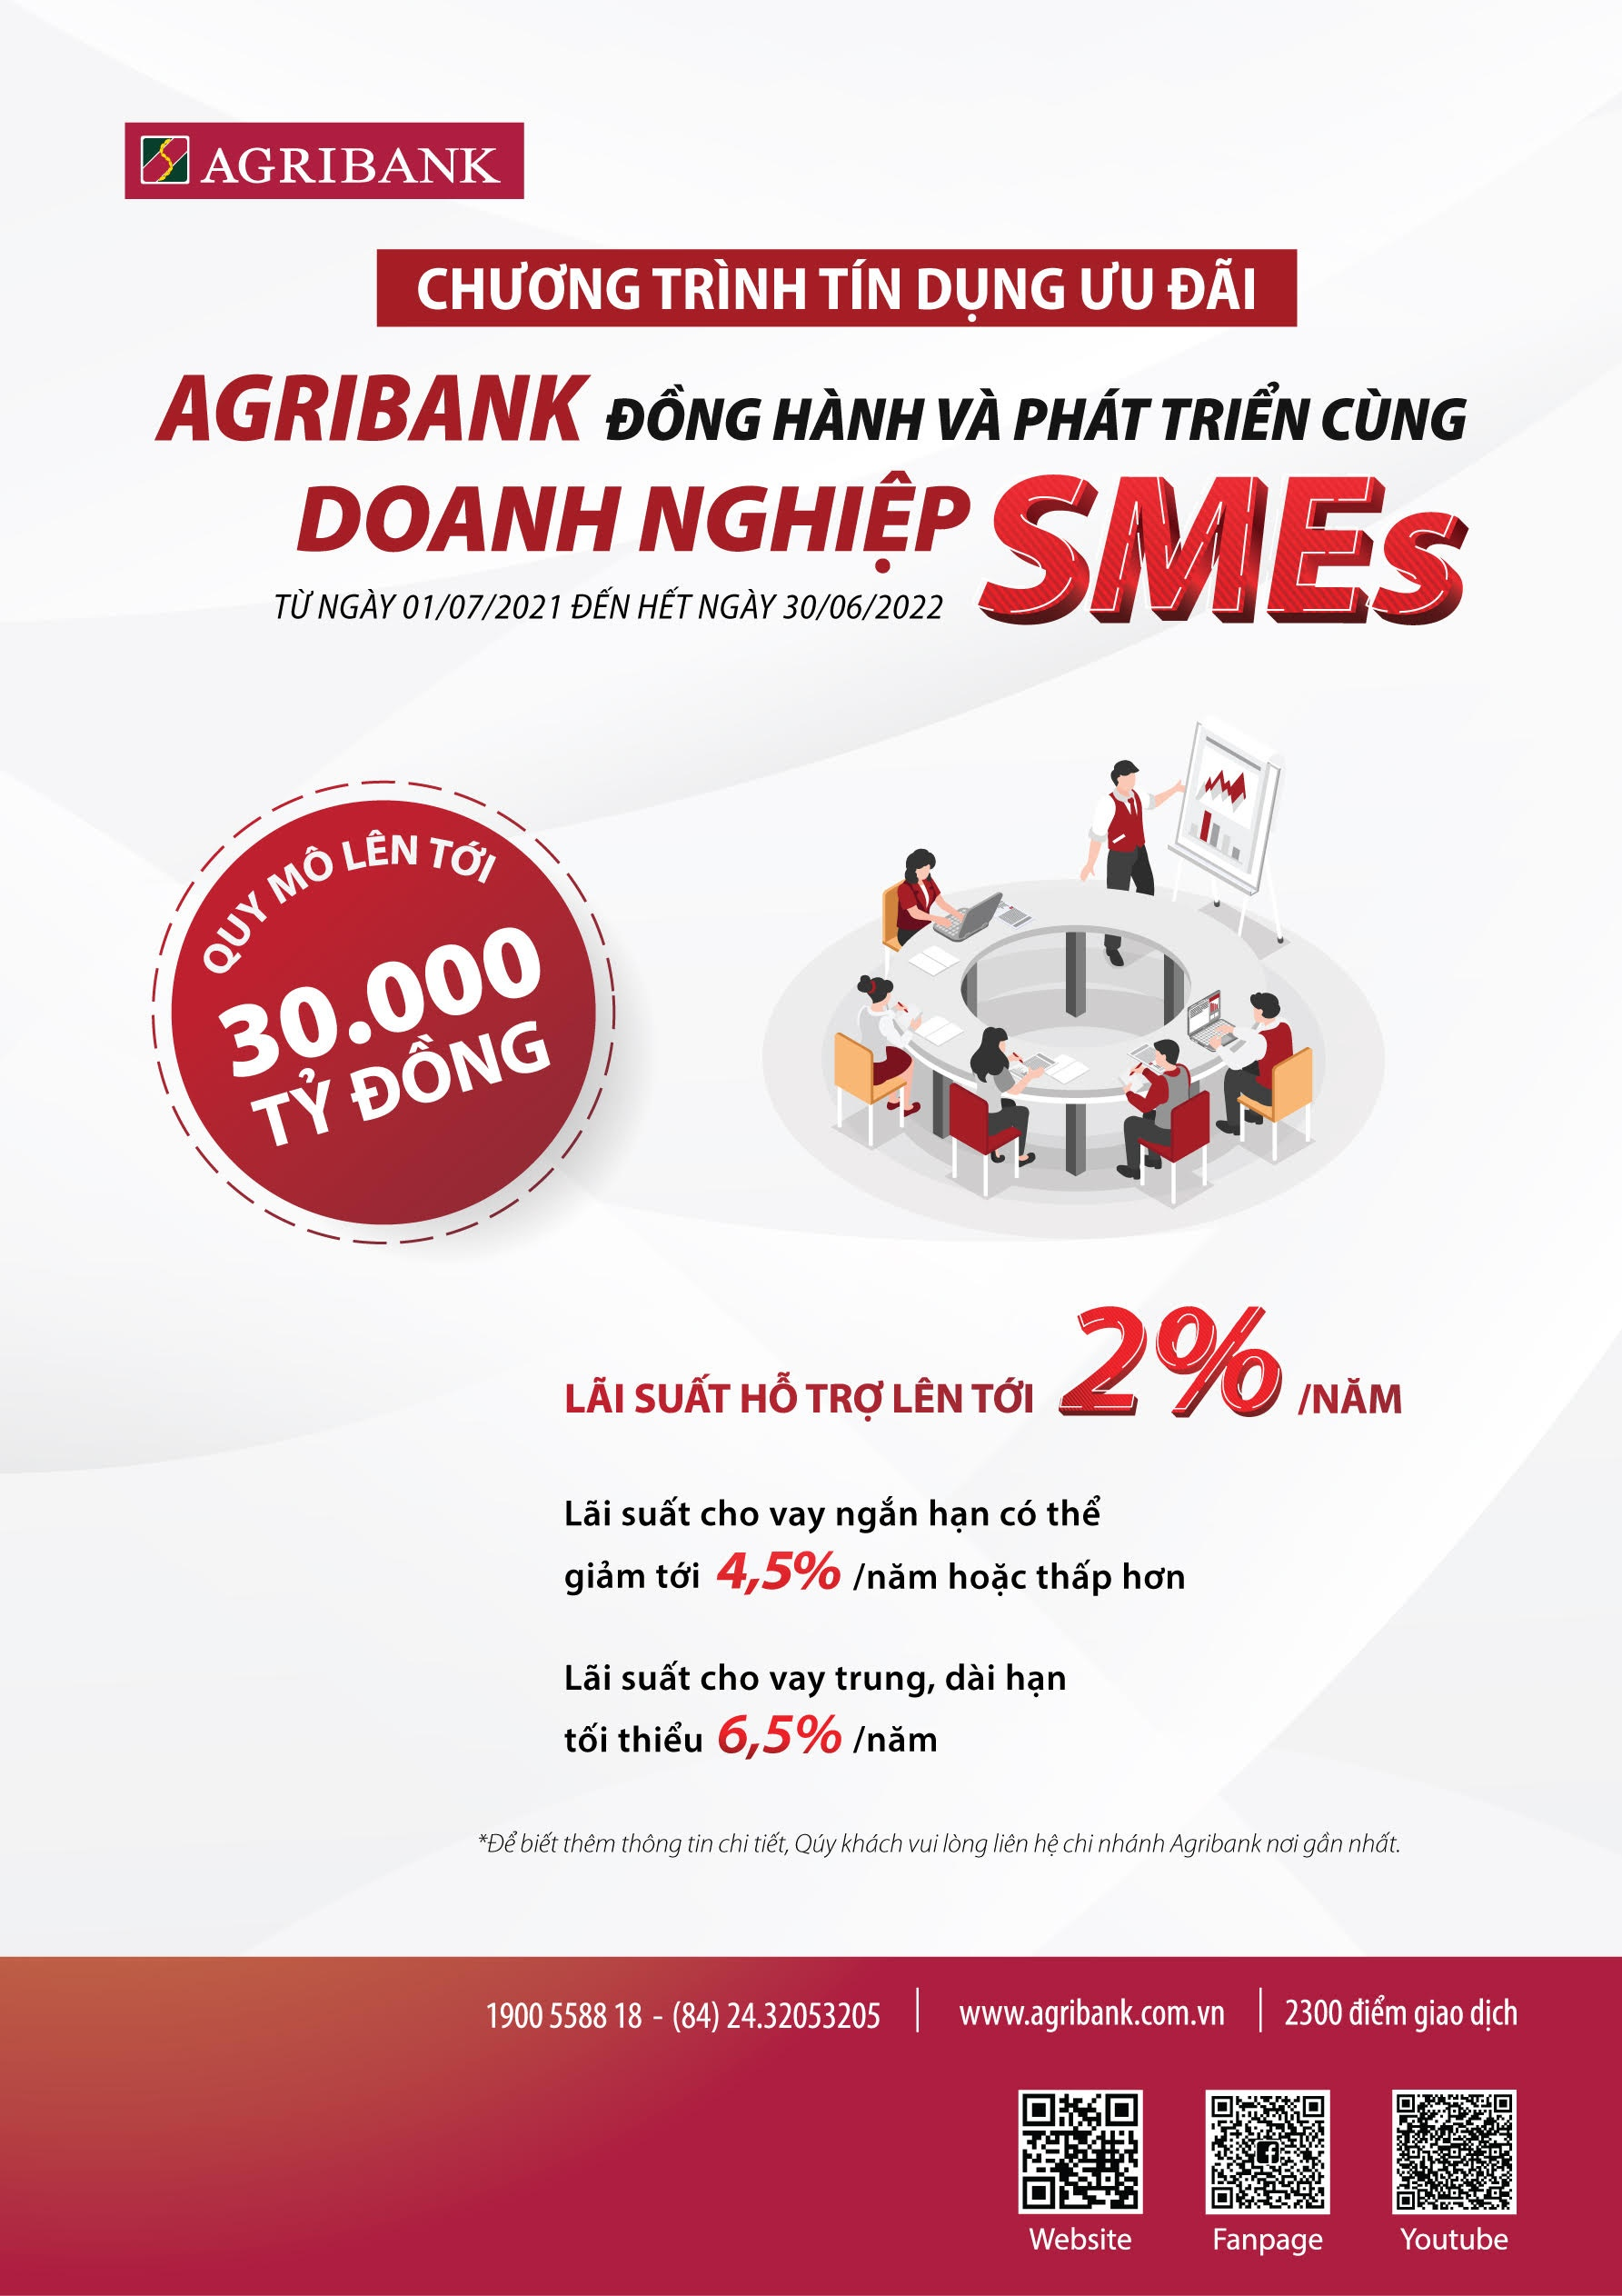 agribank tiep tuc danh 30000 ty dong de dong hanh va phat trien cung doanh nghiep smes